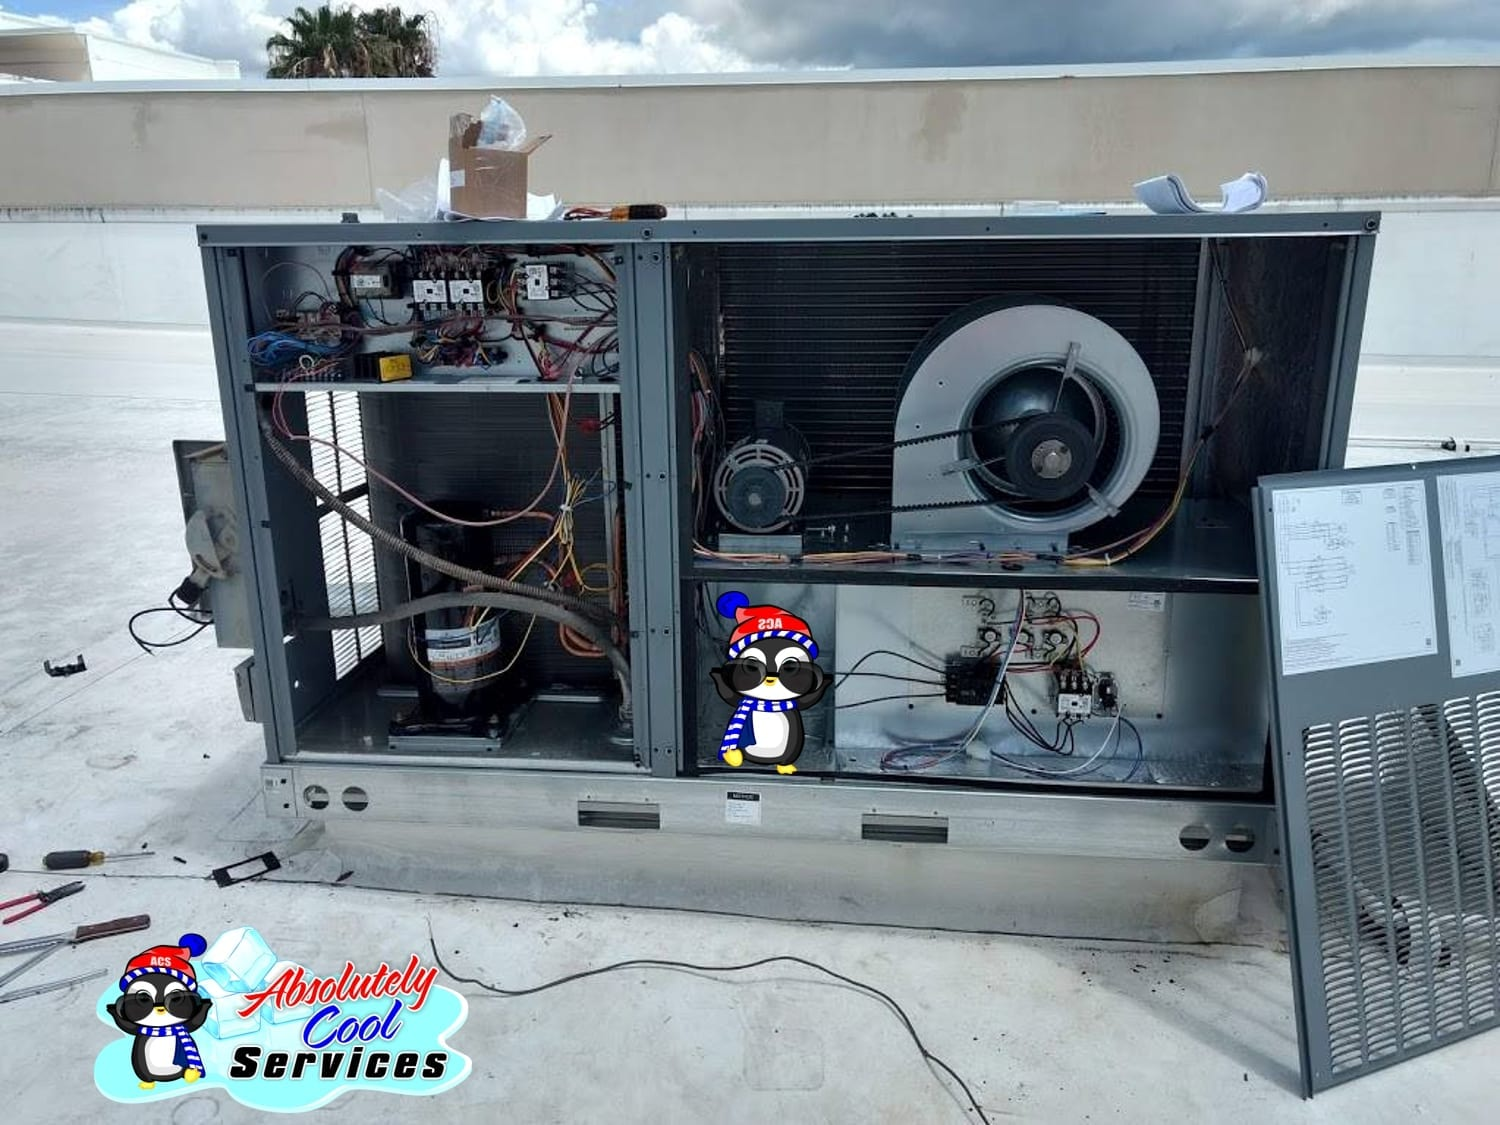 Roof Air Conditioning | Emergency Air Conditioning Maintenance Service near Boynton Beach